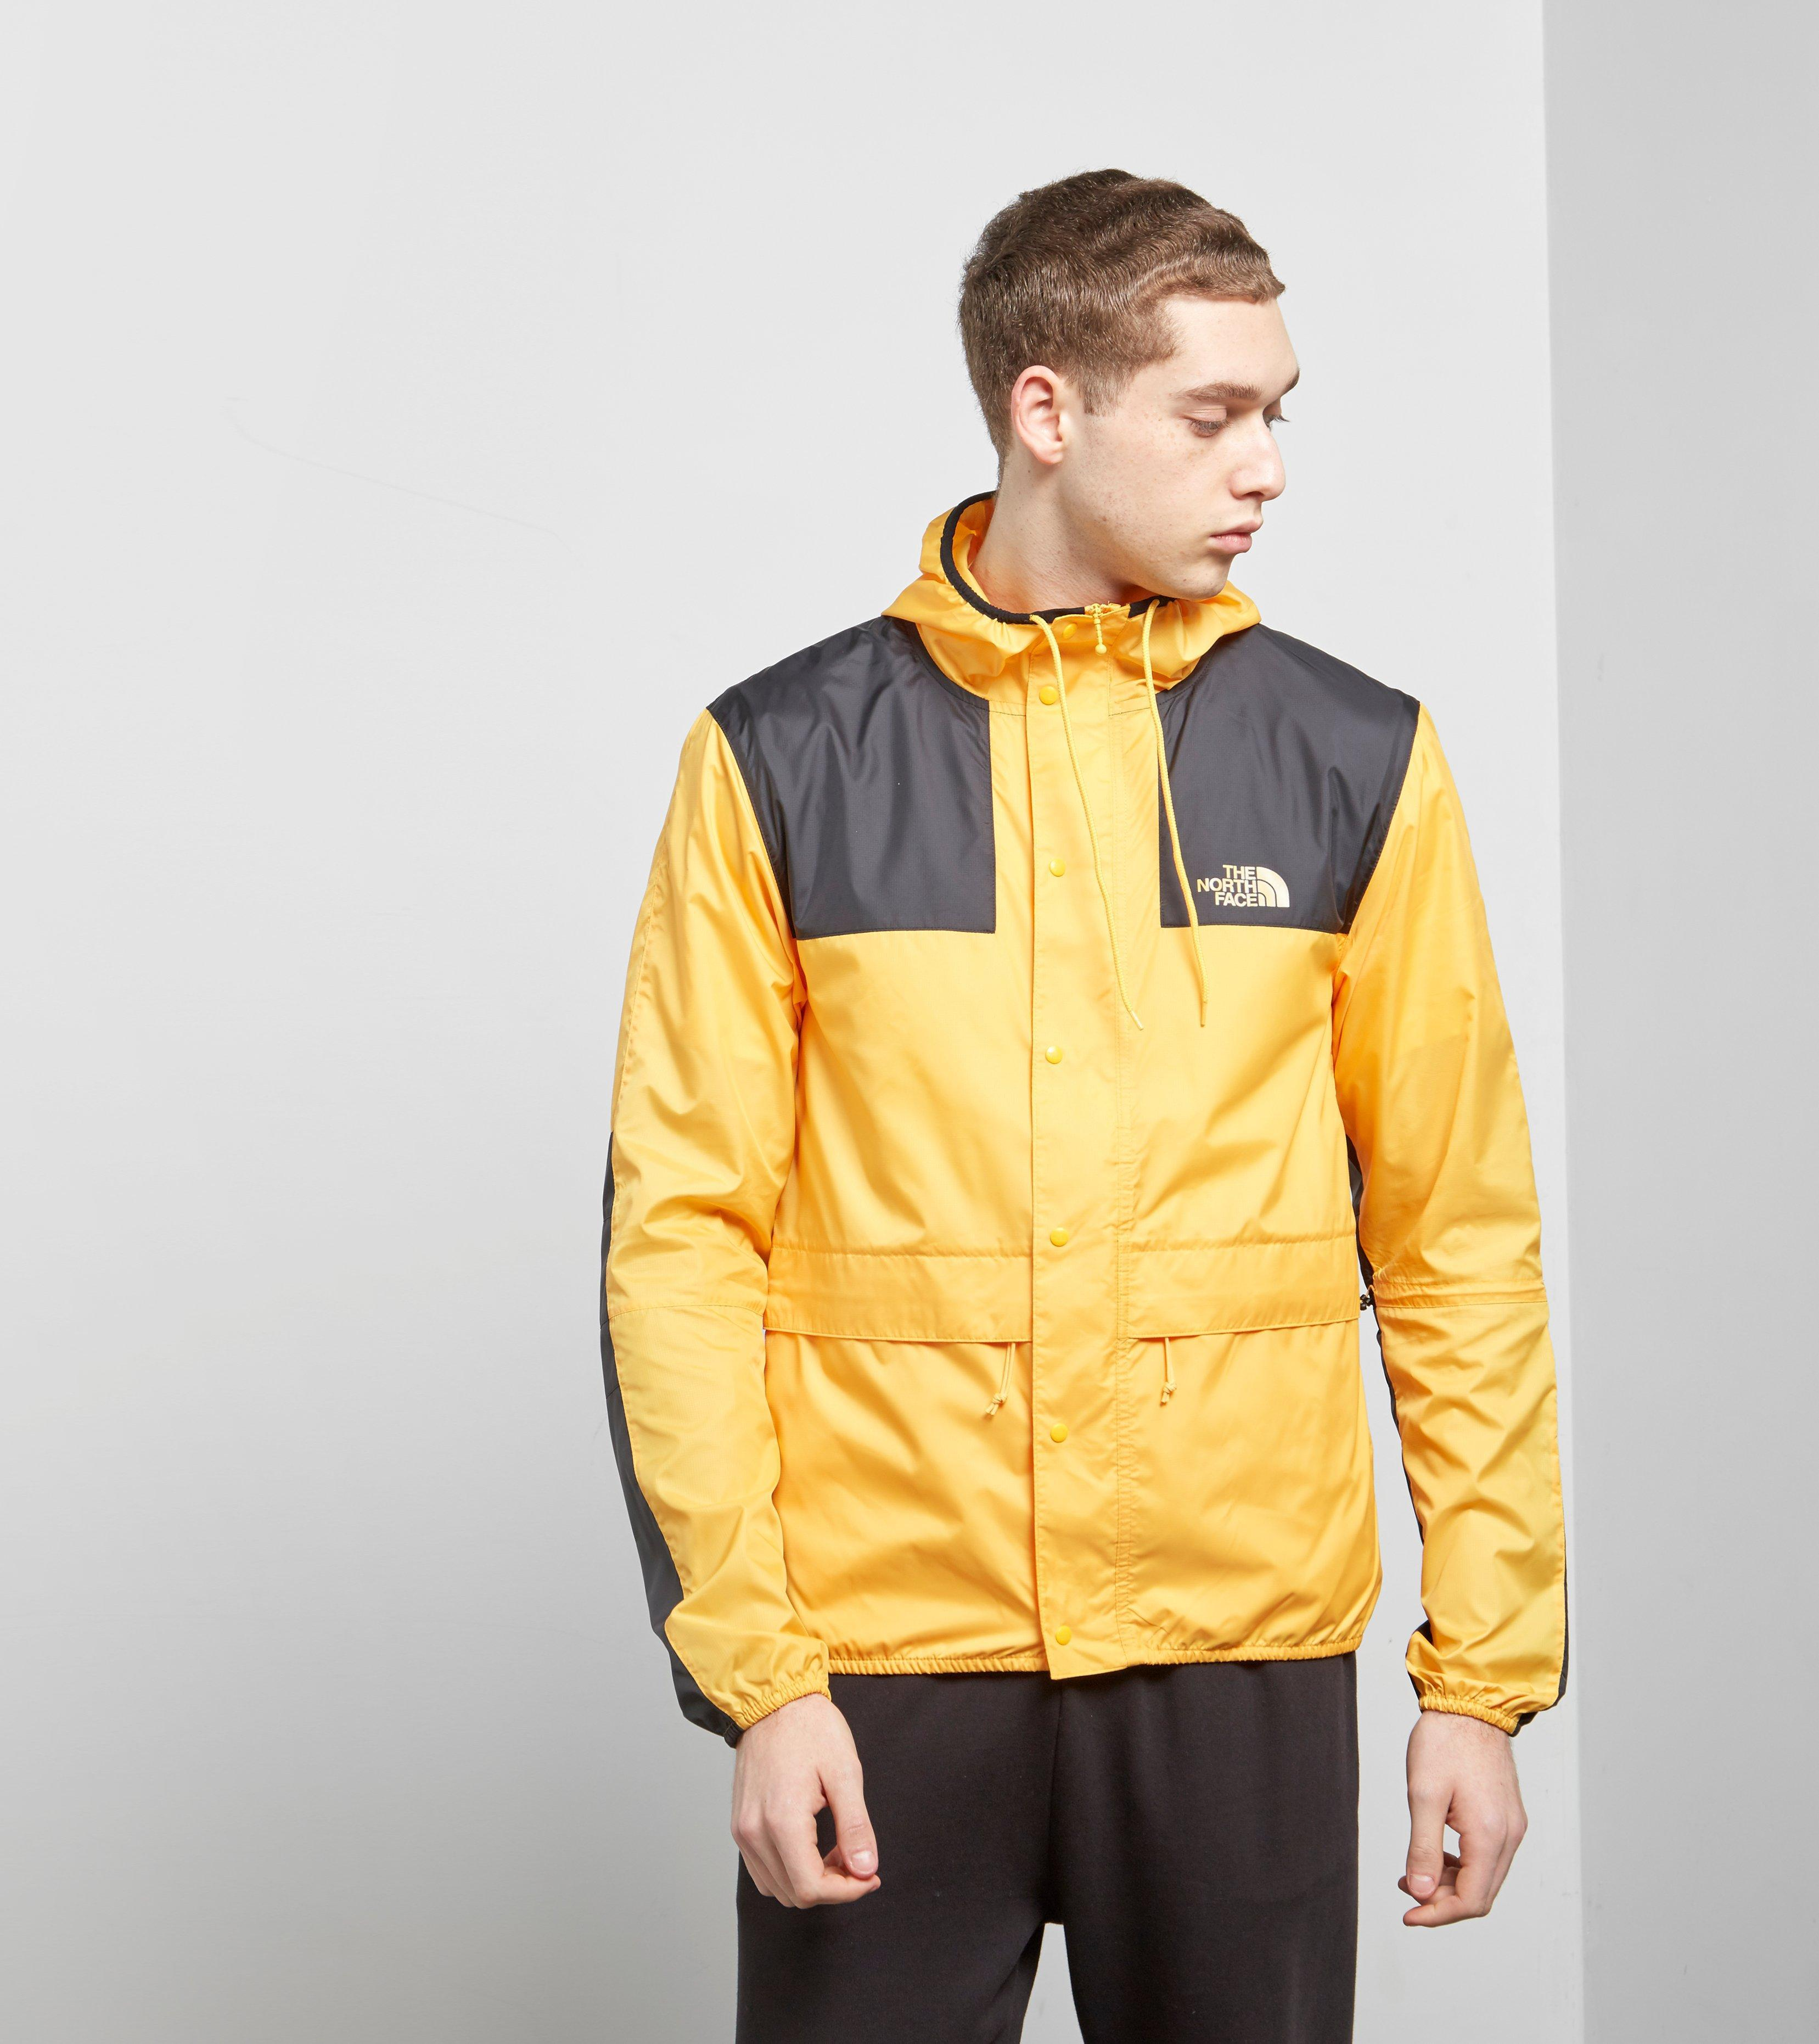 8859cc9f9 Lyst - The North Face 1985 Seasonal Jacket in Yellow for Men